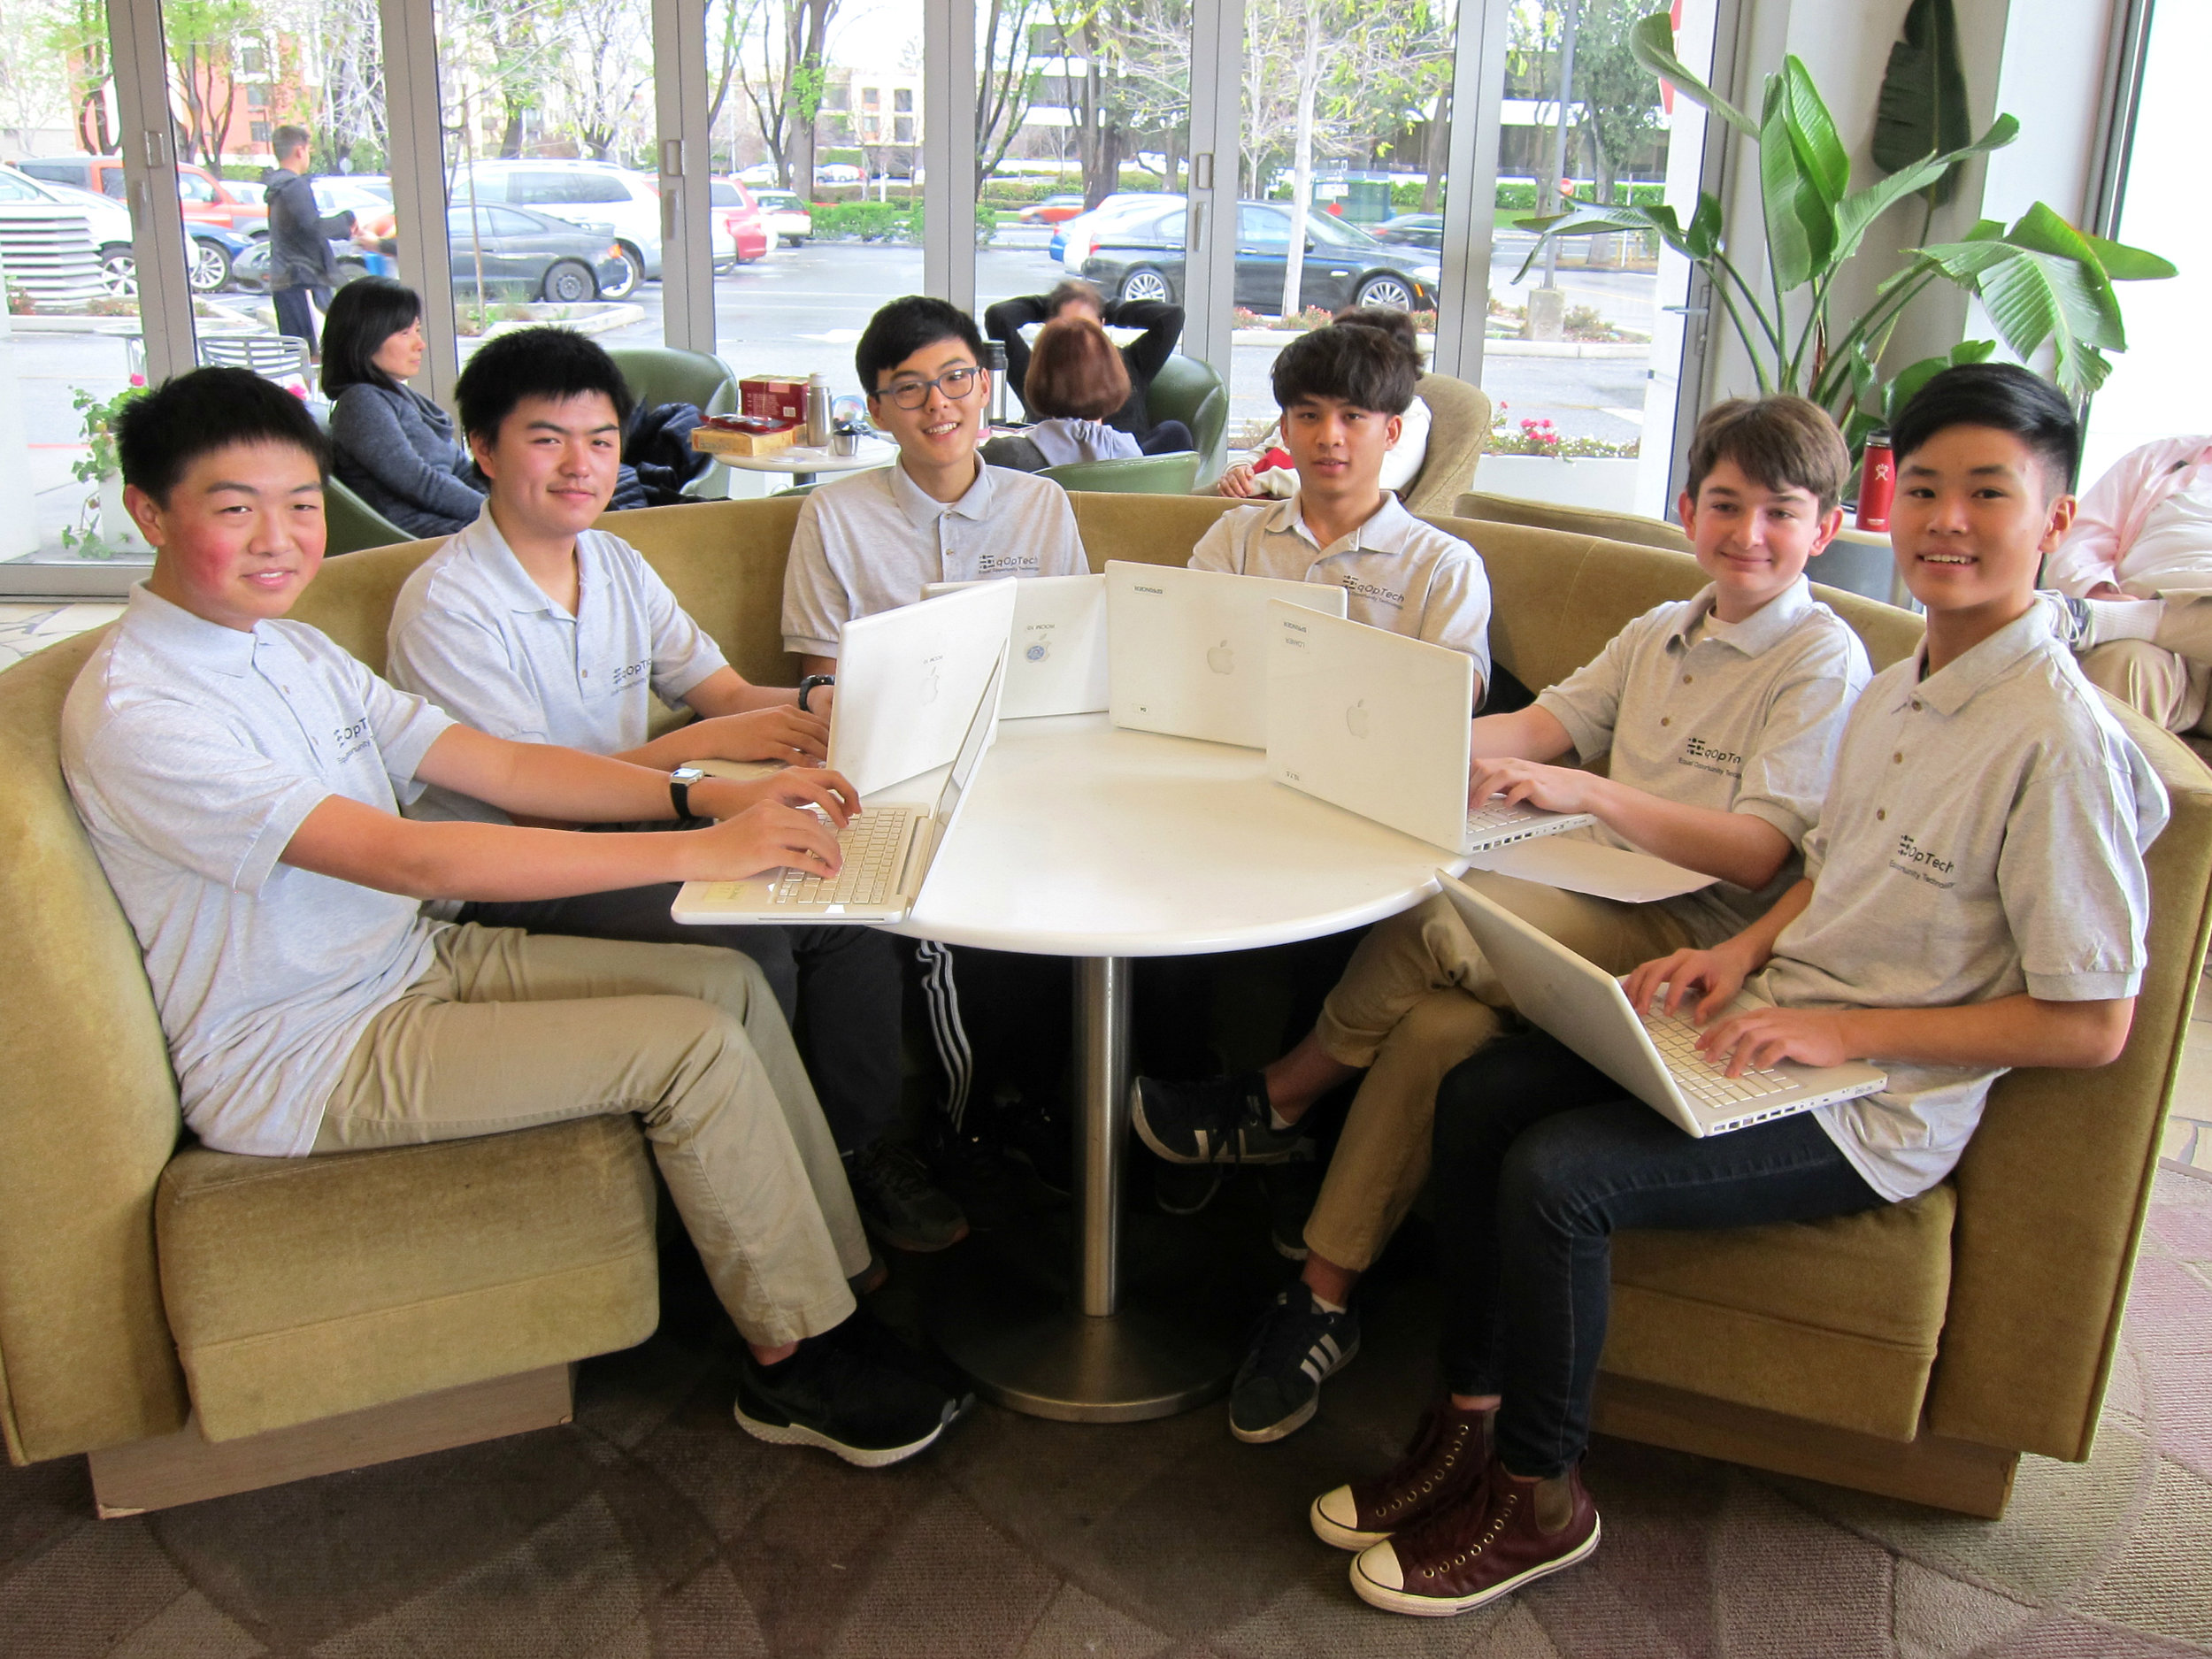 Eric Che, Kevin Gao, Daniel Lim, Nate Latif, Trevor Smith, Cedric Chan (left to right) refurbish computers for at-risk students